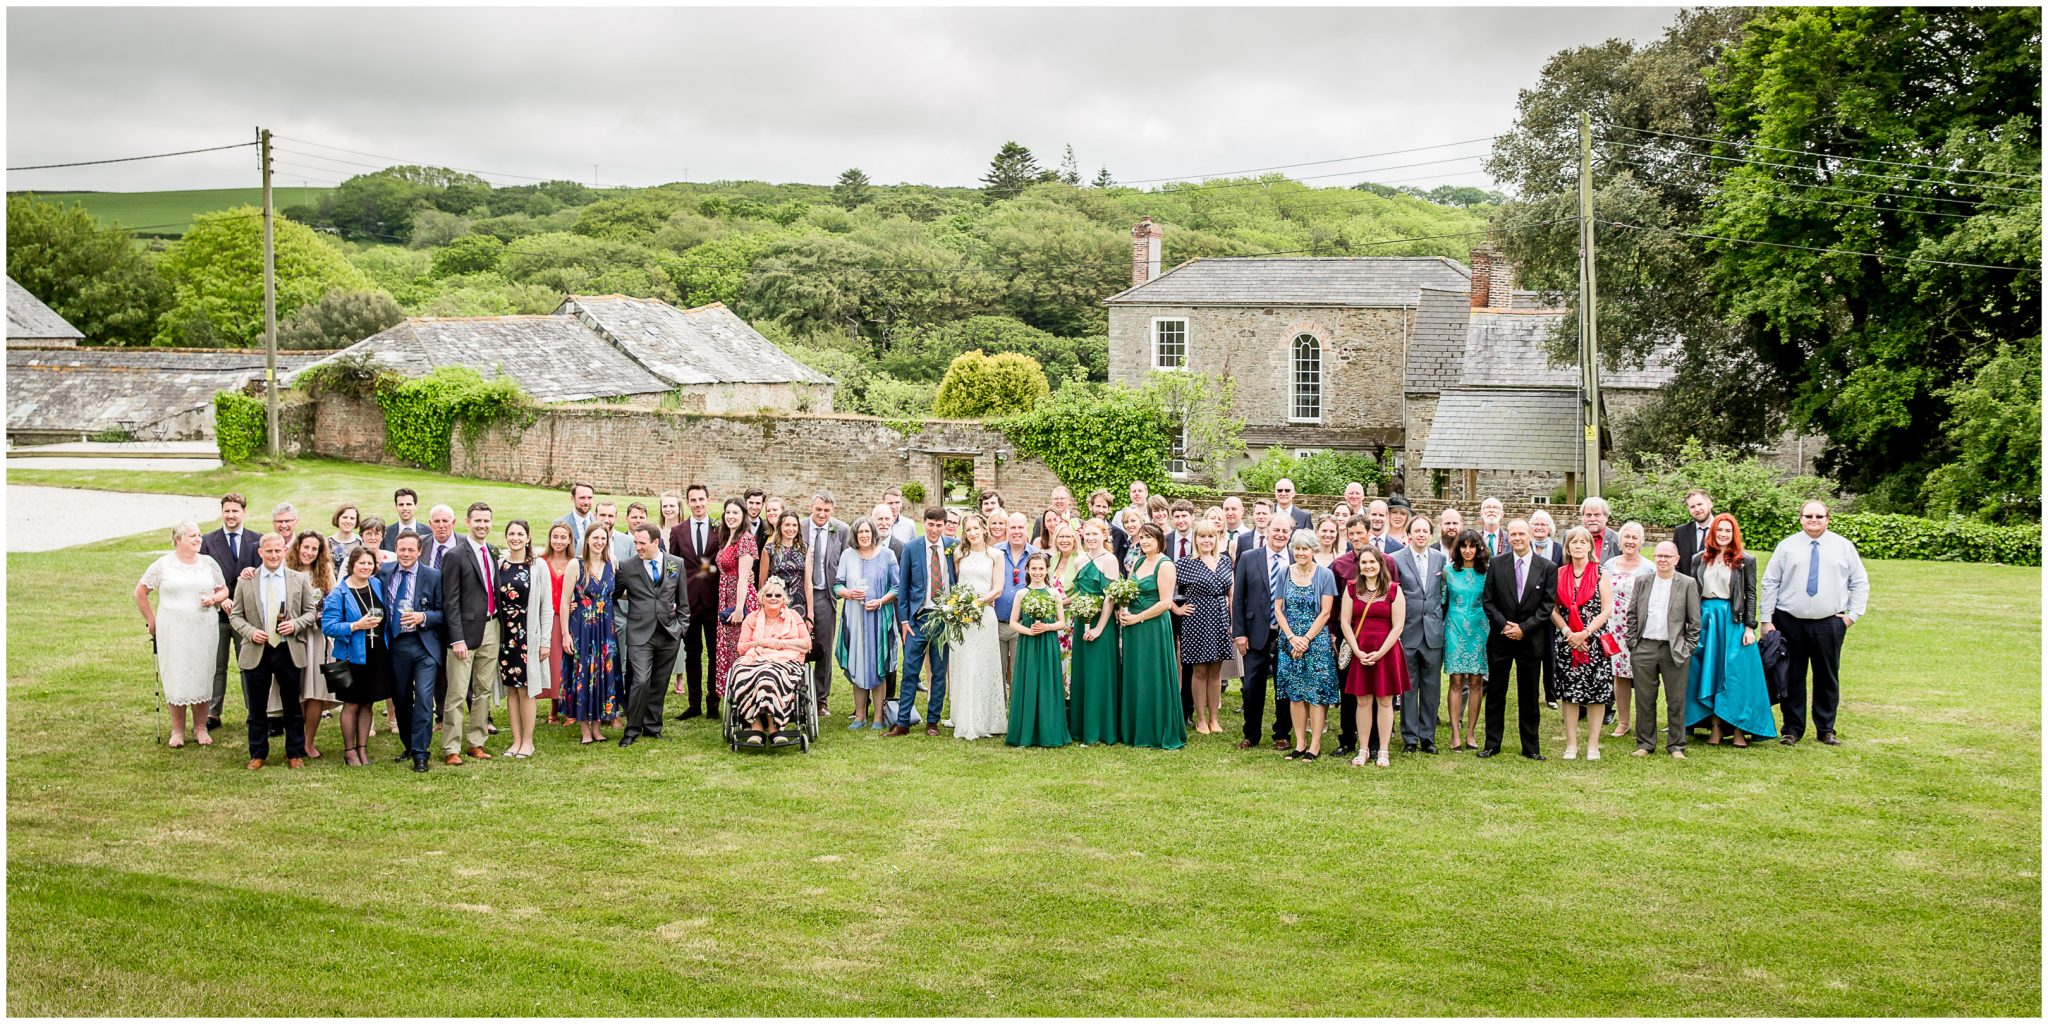 Group photo of all guests with house and hills in the background